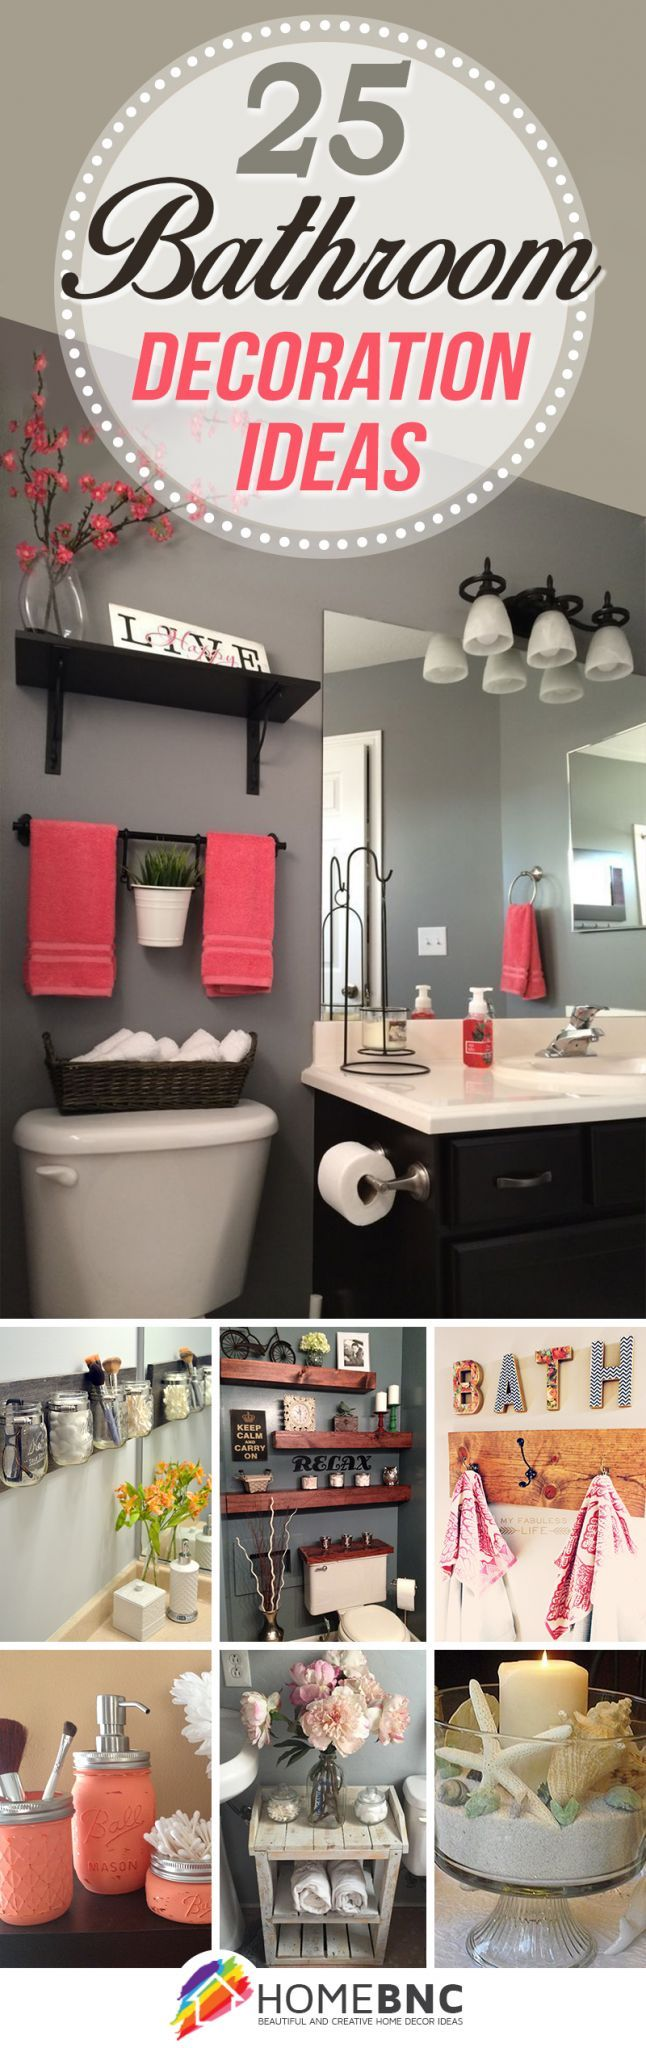 Exciting Bathroom Decor Ideas To Take Yours From Functional To Fantastic